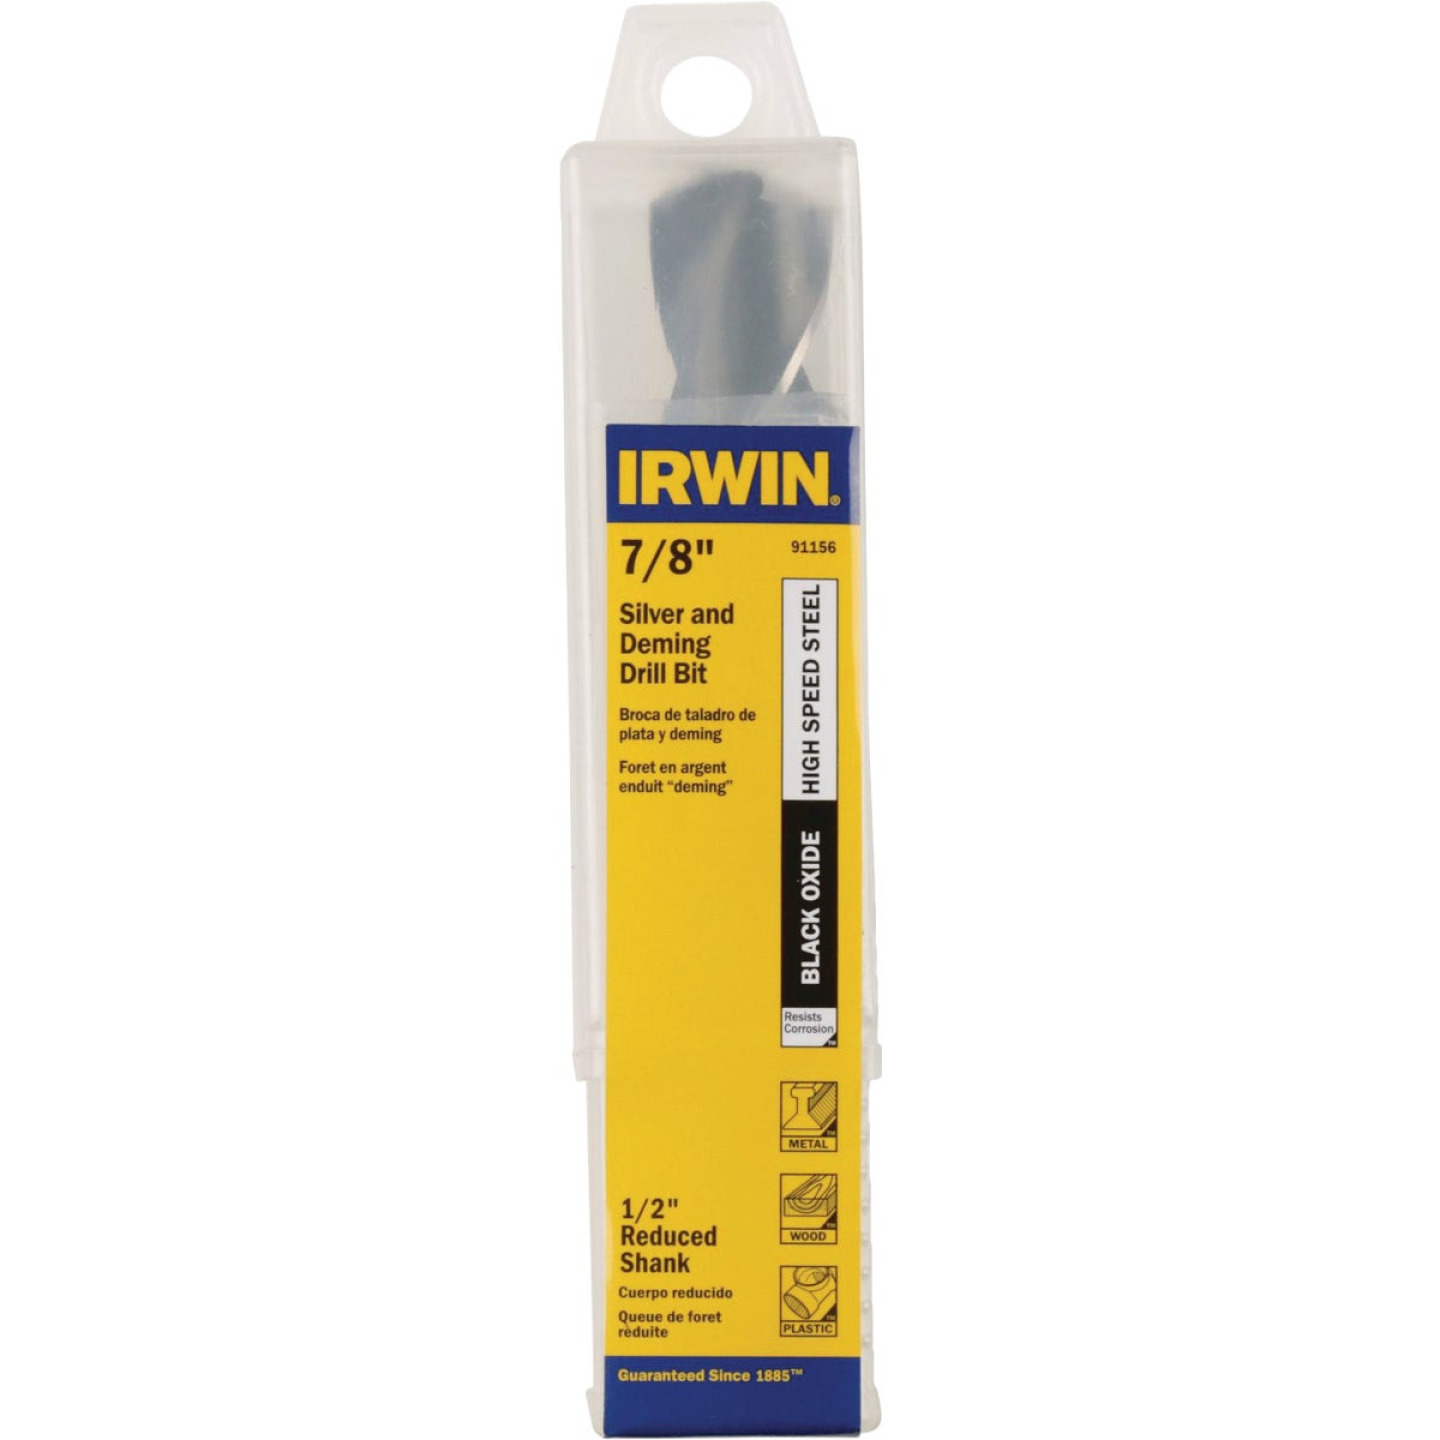 Irwin 7/8 In. Black Oxide Silver & Deming Drill Bit Image 1